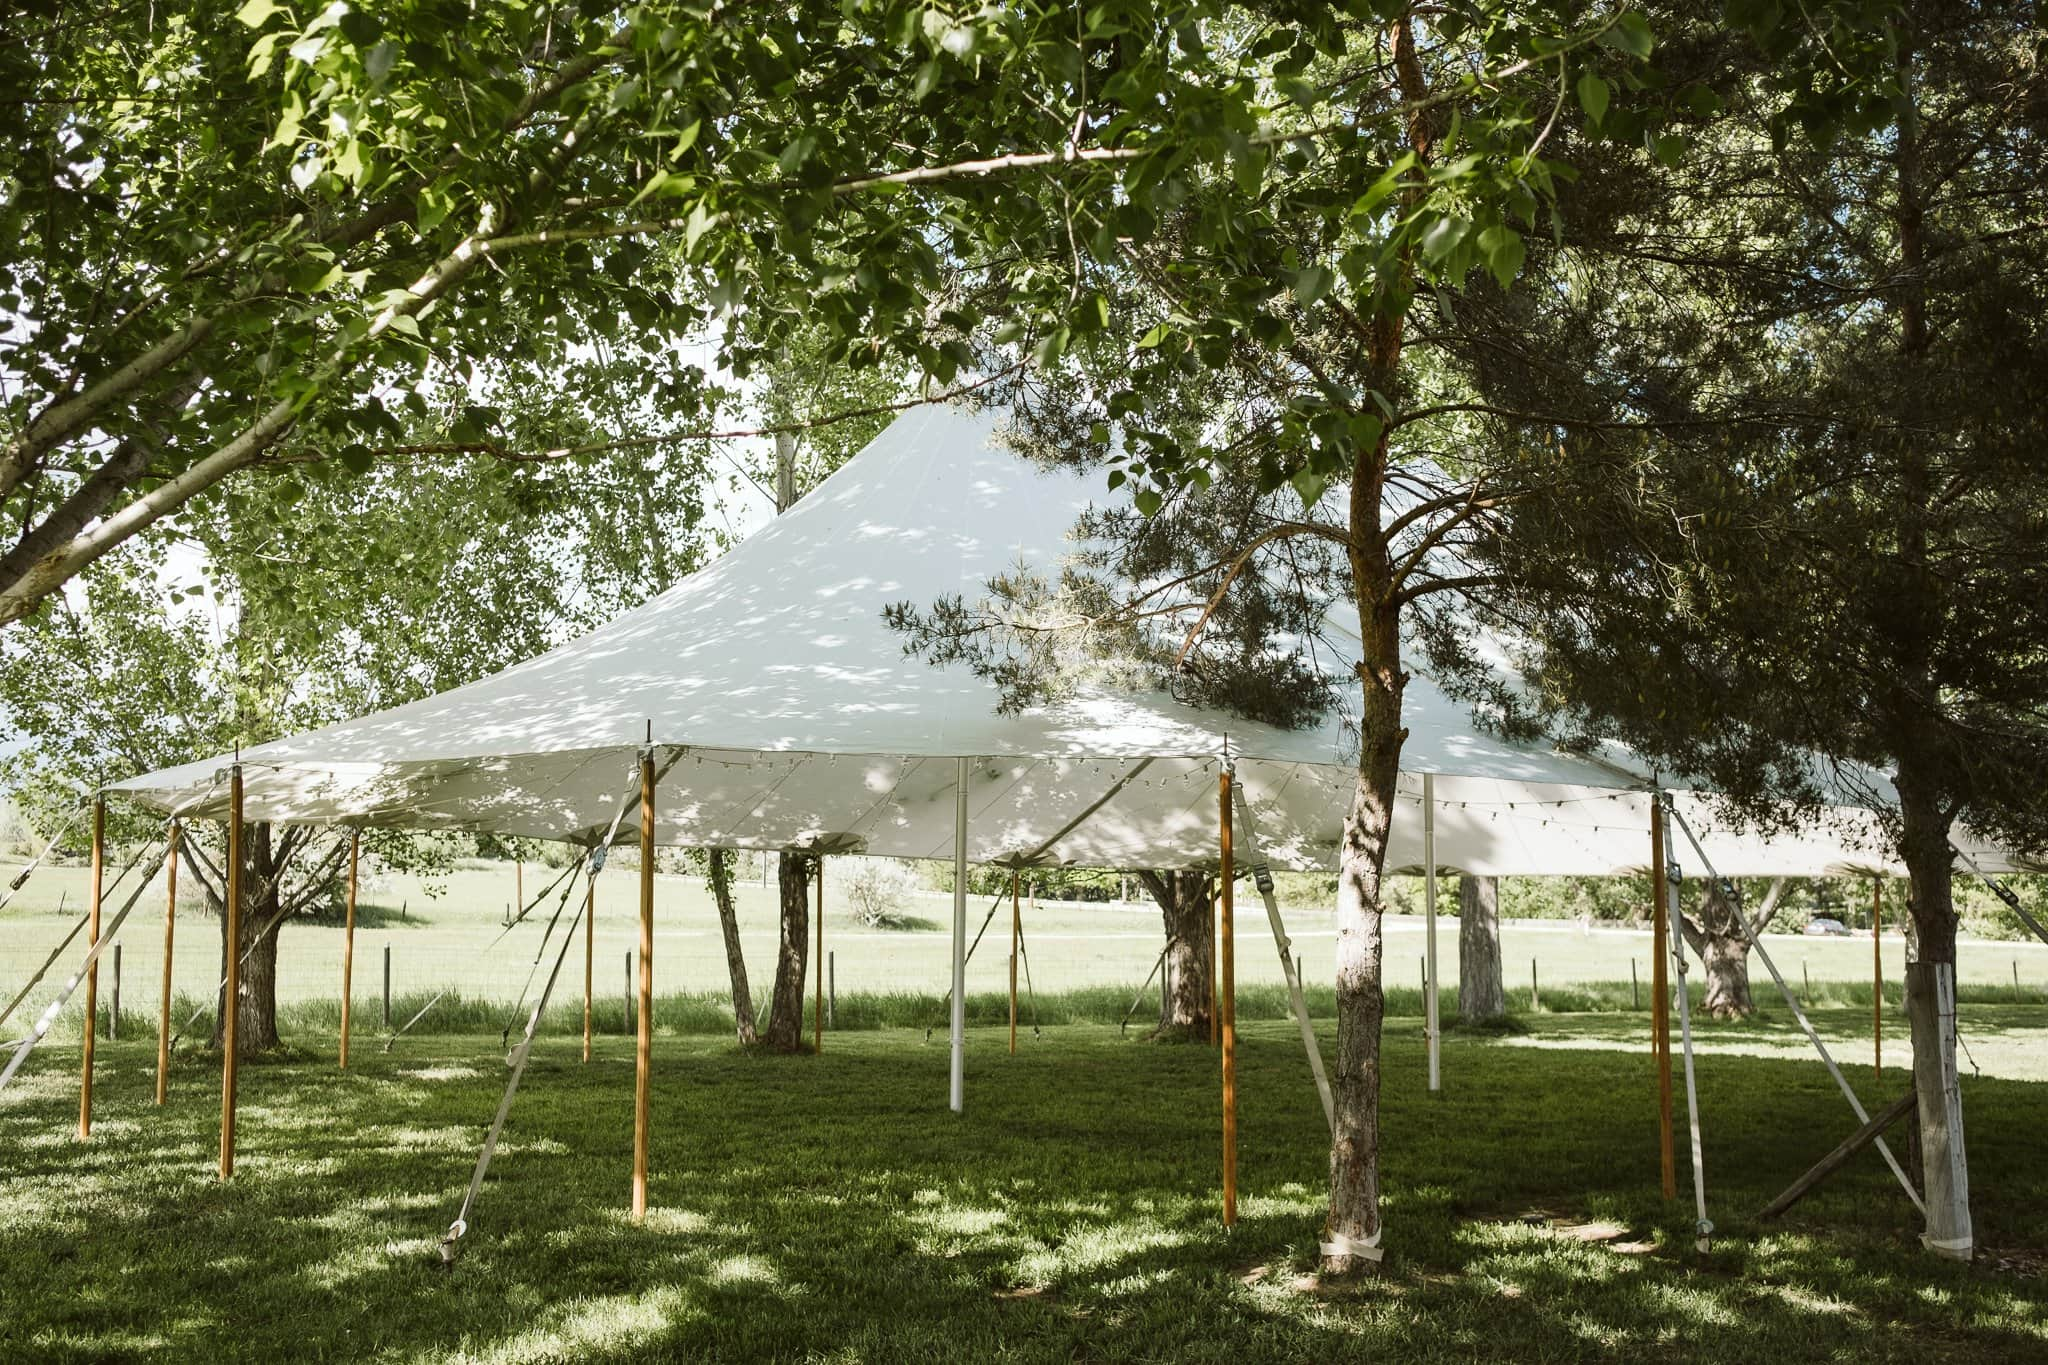 milston-well-farm-wedding-venue-boulder-20